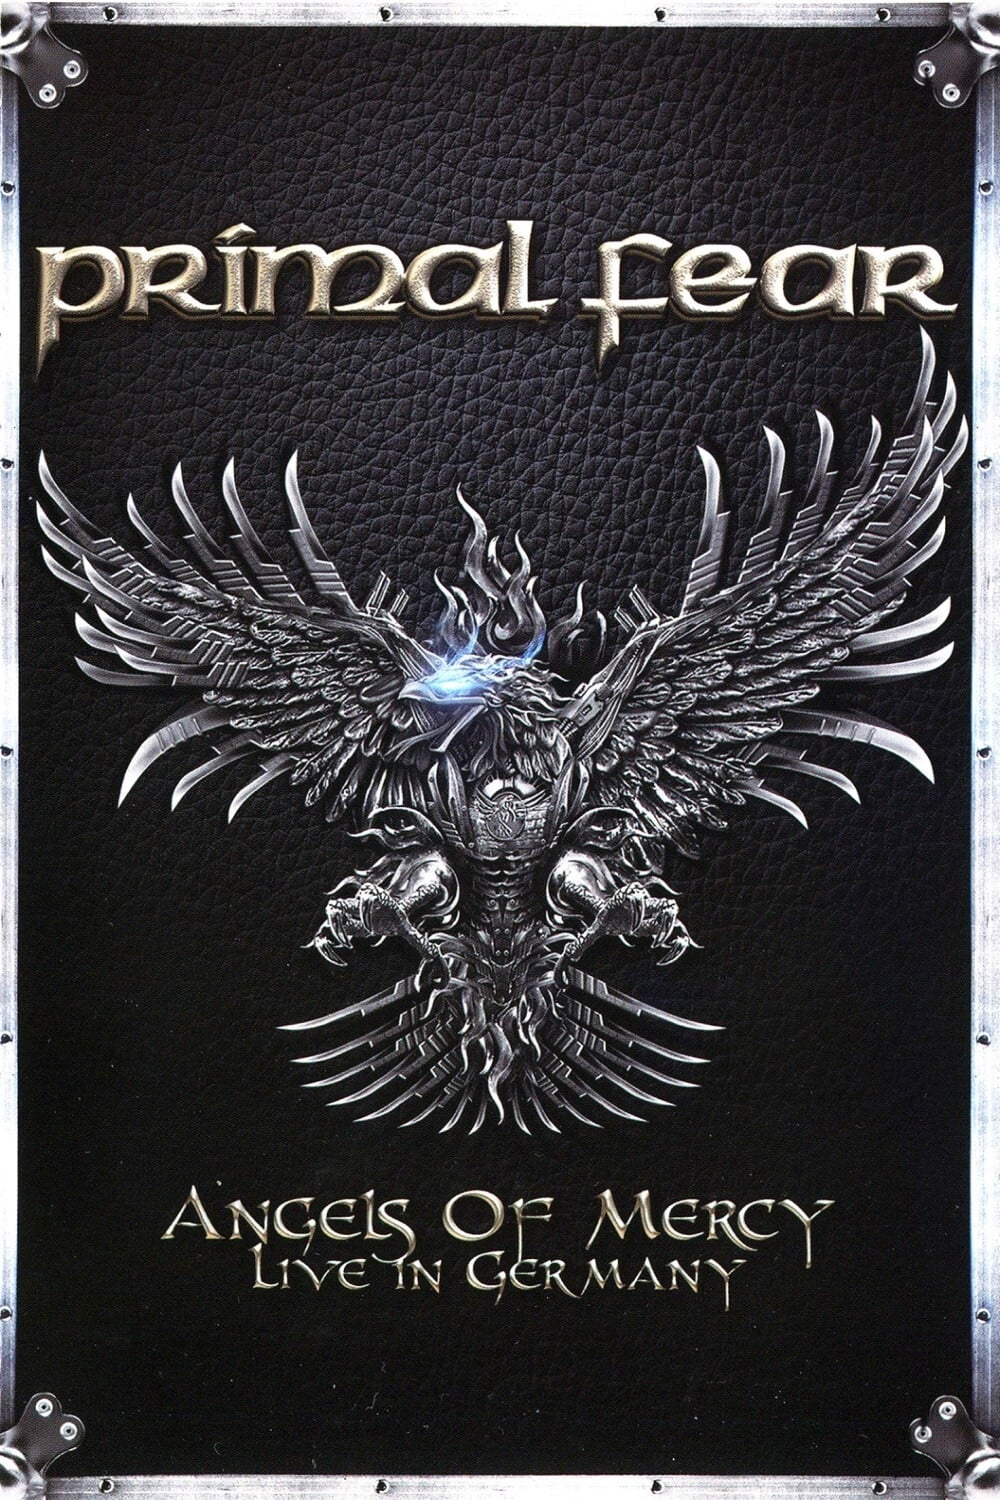 Primal Fear - Angels of Mercy - Live in Germany (2017)